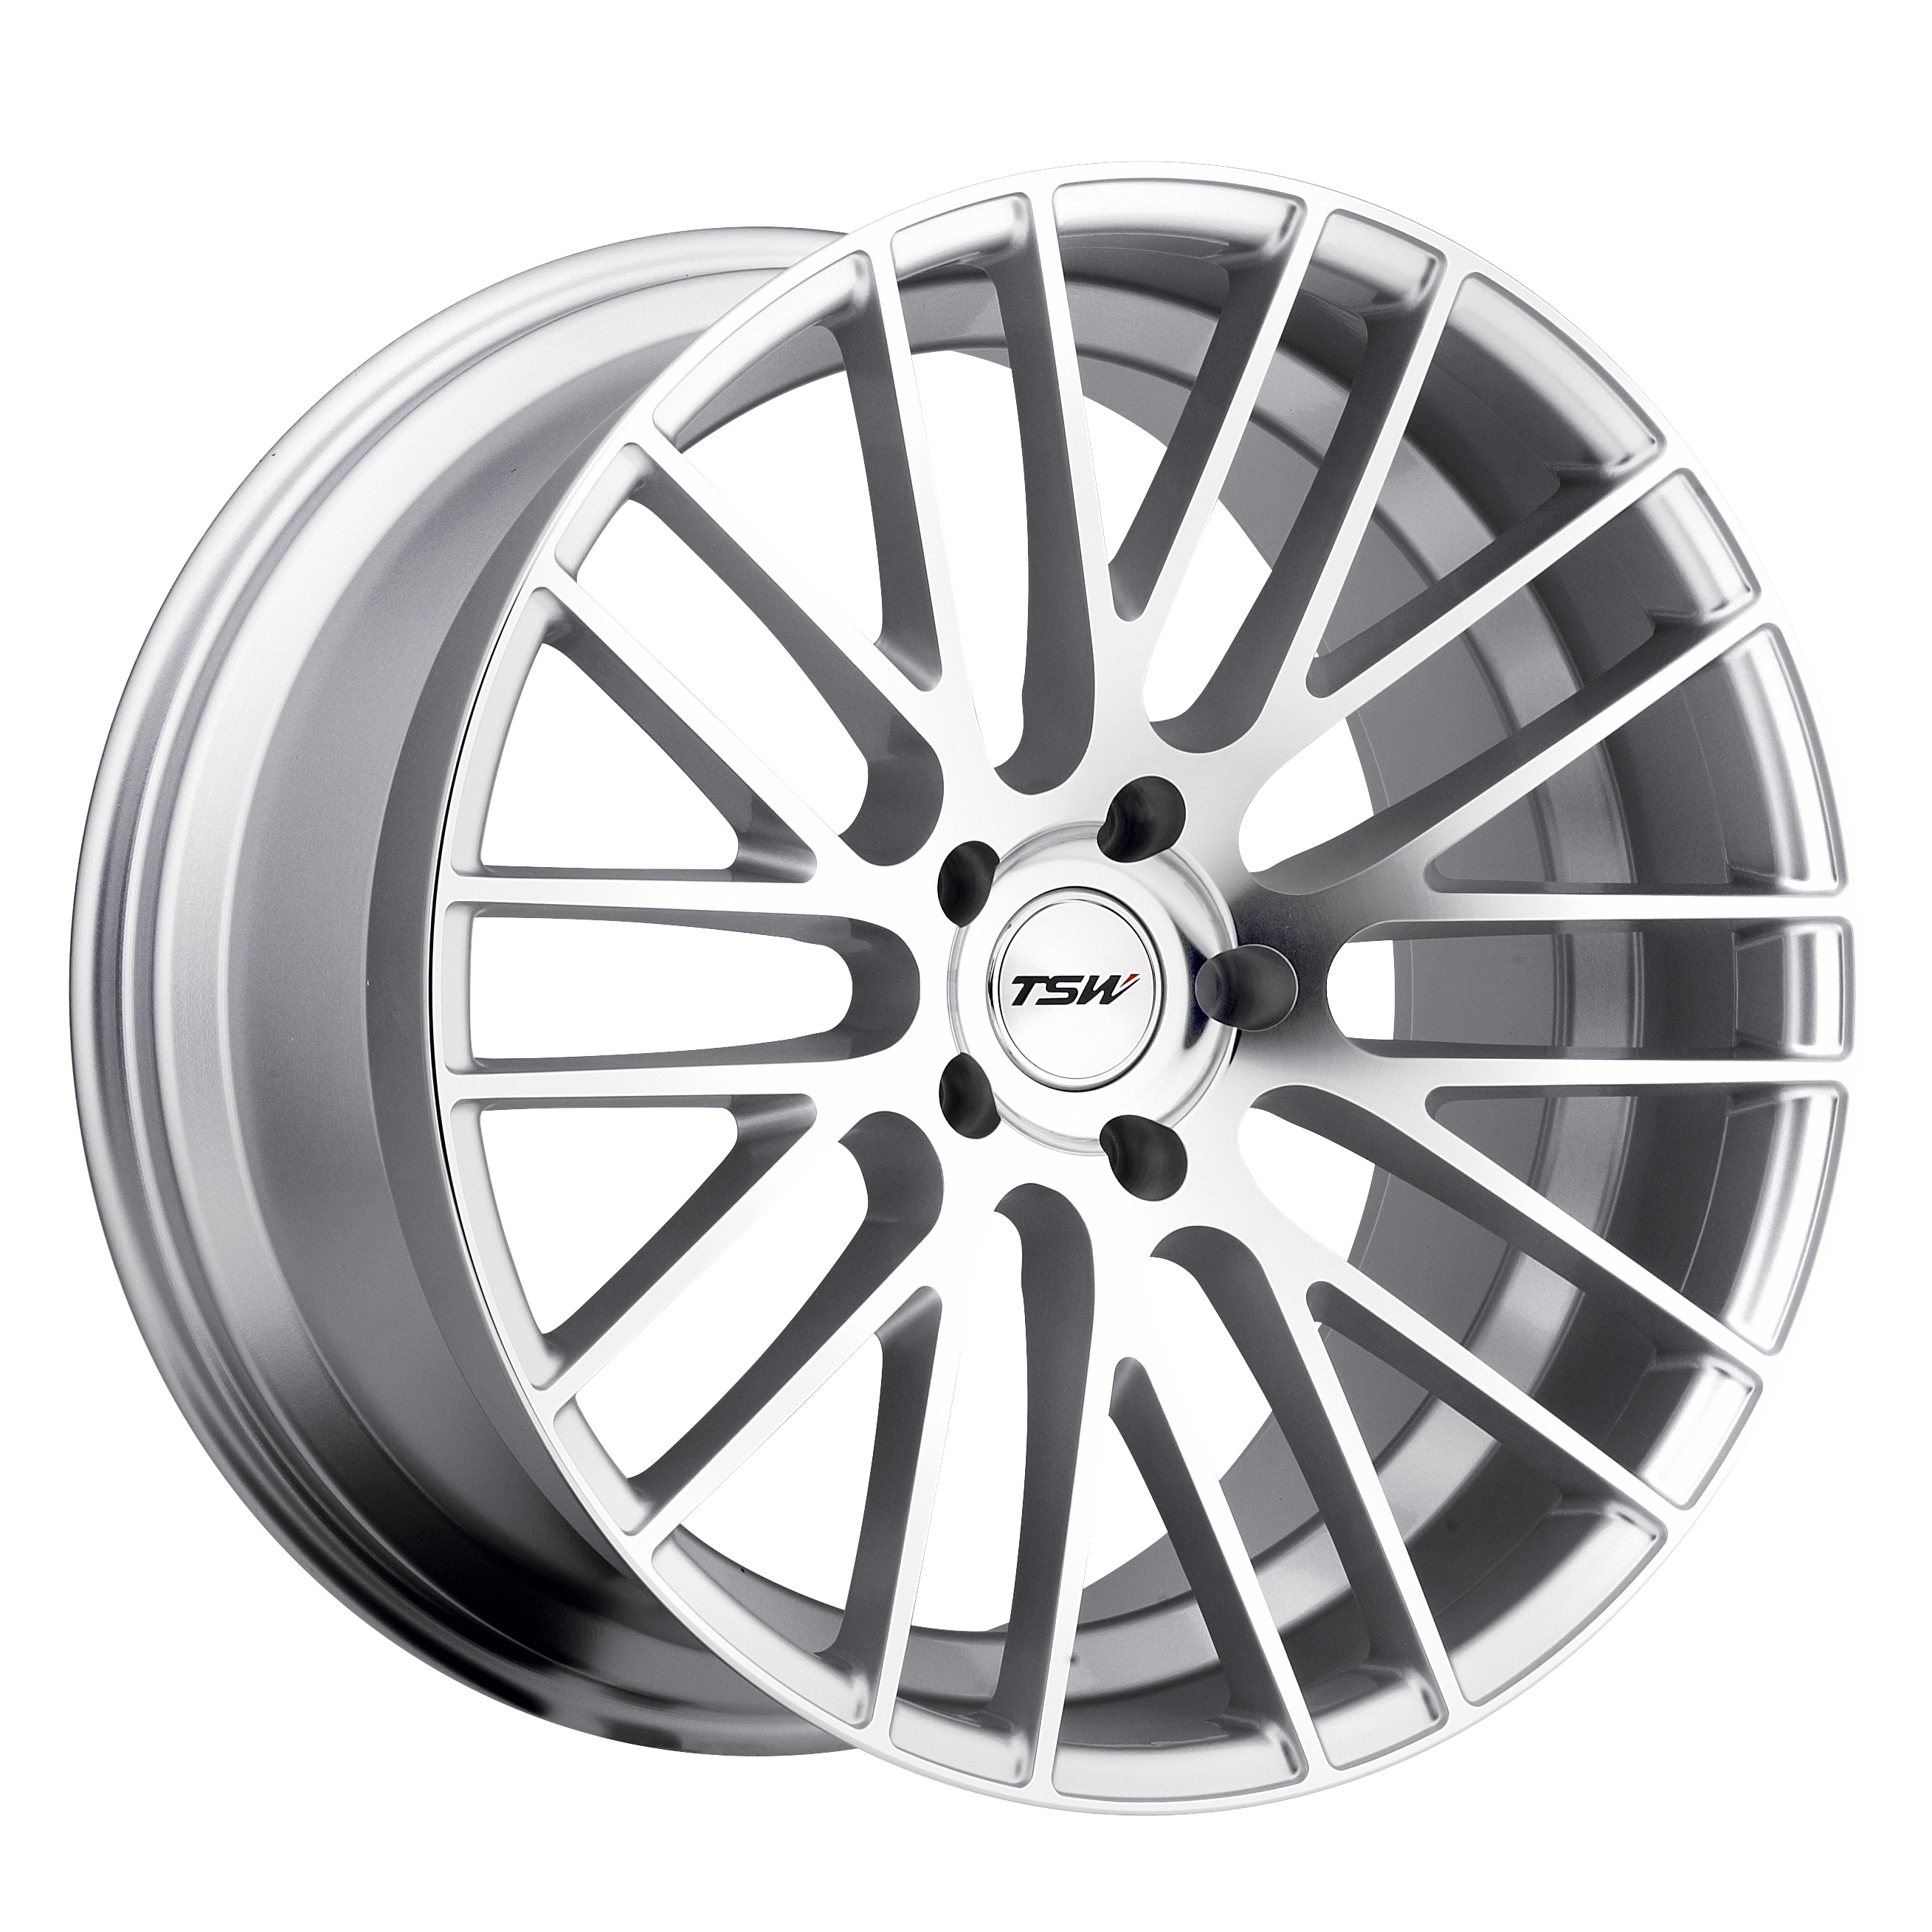 Automotive Rims And Wheels >> TSW Alloy Wheels Launches New Parabolica Rotary Forged 20-Spoke Wheel